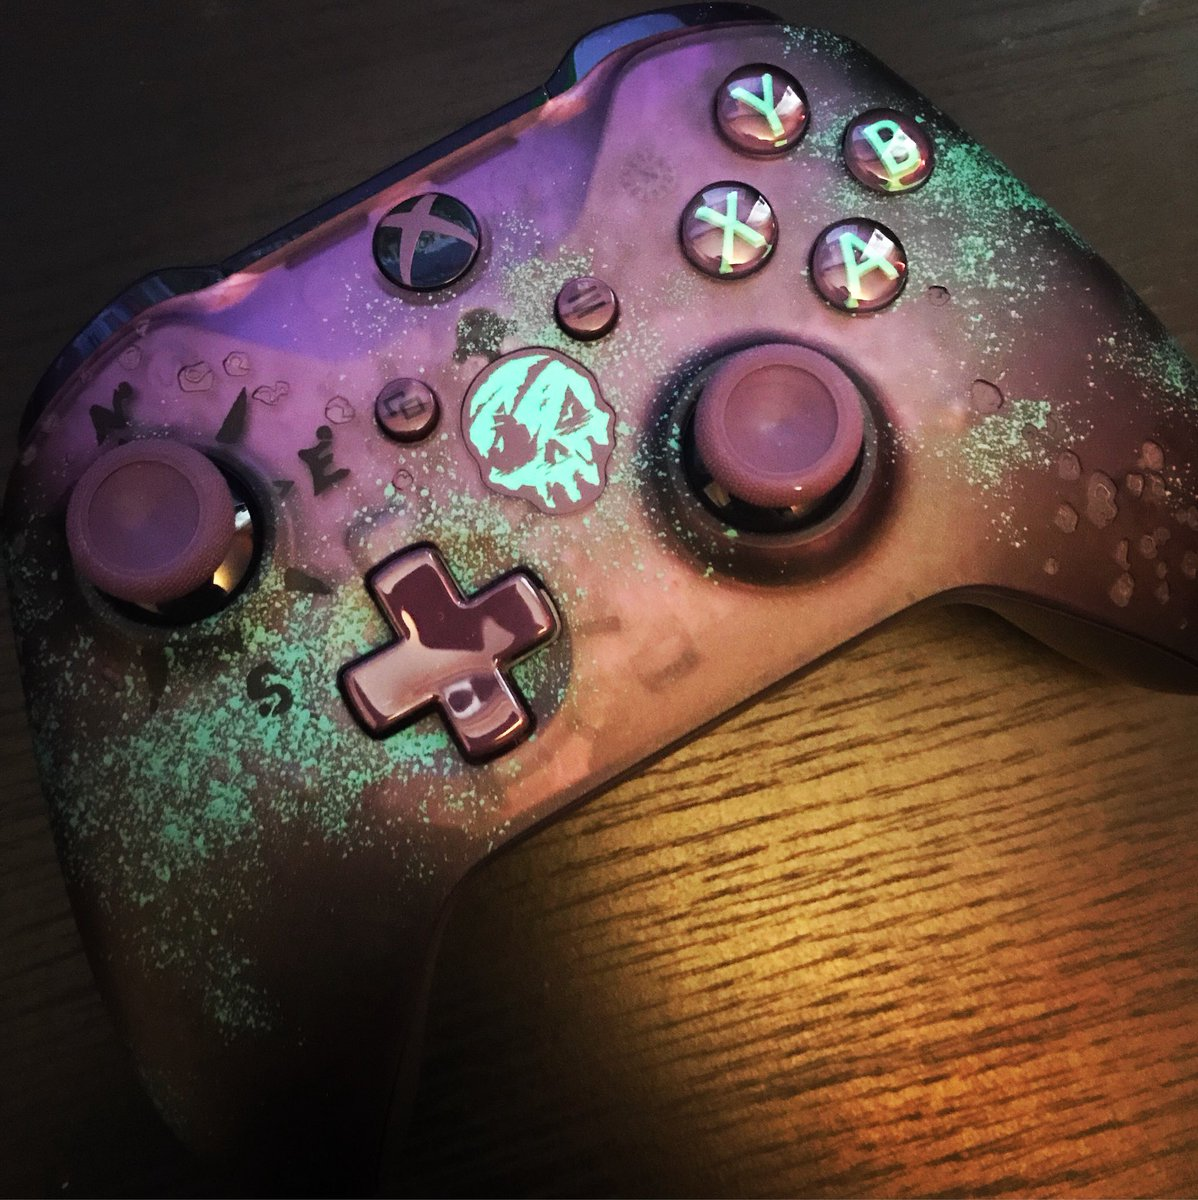 This amazing #SeaOfThieves #XboxOne controller is available in store now!  I got mine and with a deal like this what are you waiting for to get yours?!  Trade in your old controller and pick up this bad boy for only £34.99!! https://t.co/pRNwFWMzih